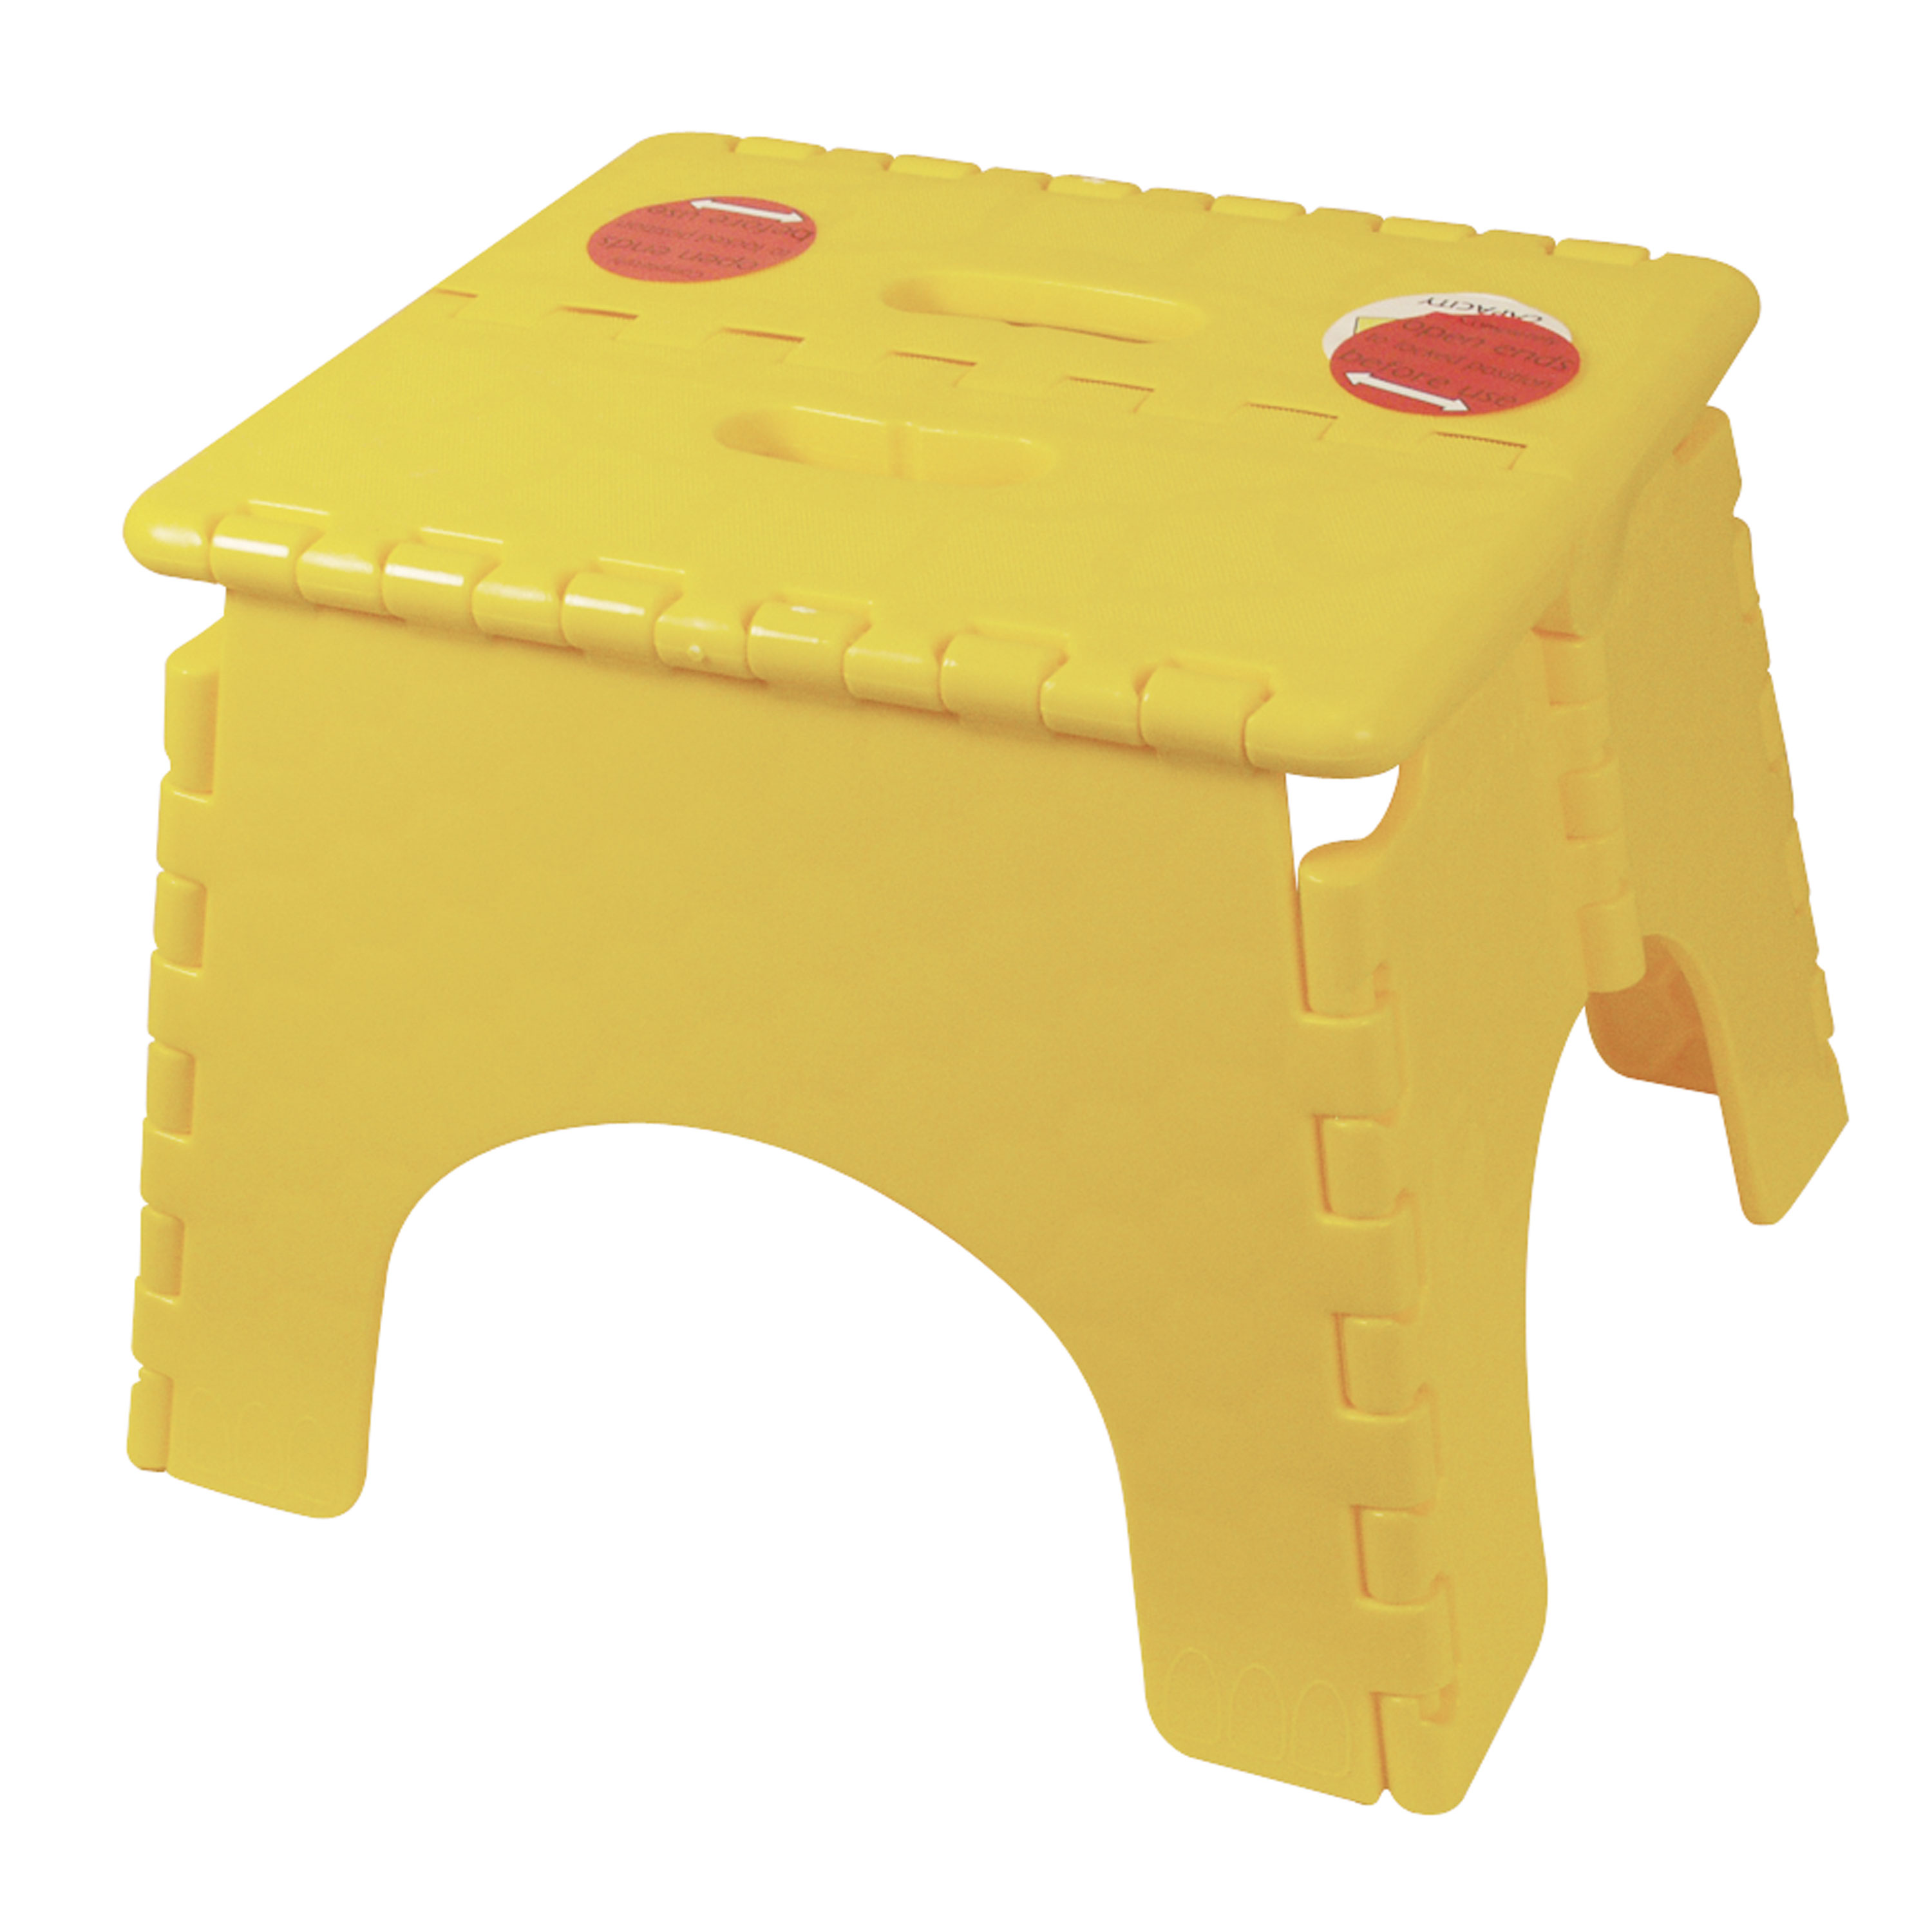 "B&R Plastics 101-6Y-YELLOW E-Z Foldz Step Stool - 9"", Yellow"